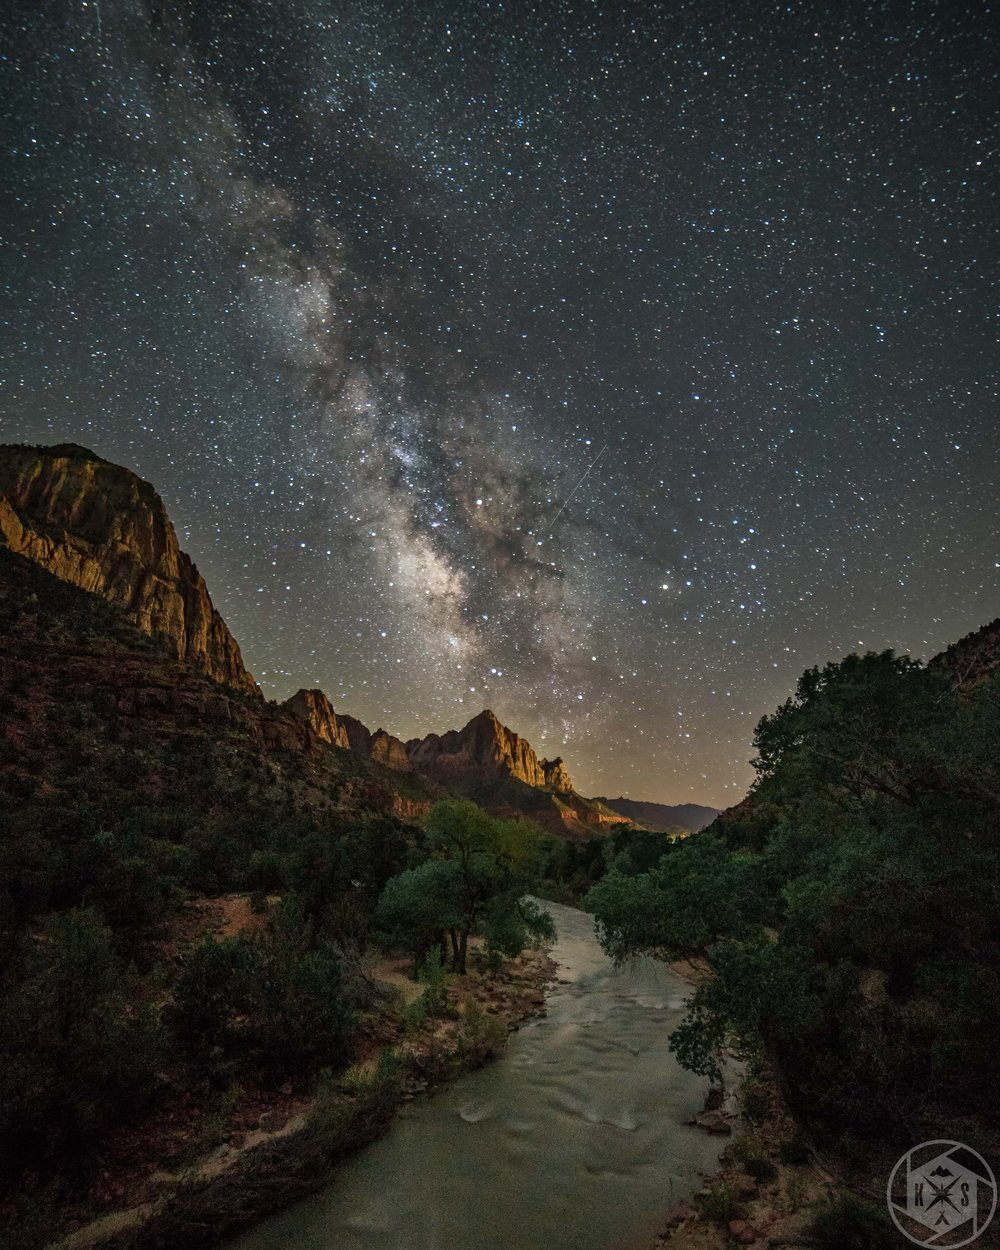 The Watchman: Zion National Park